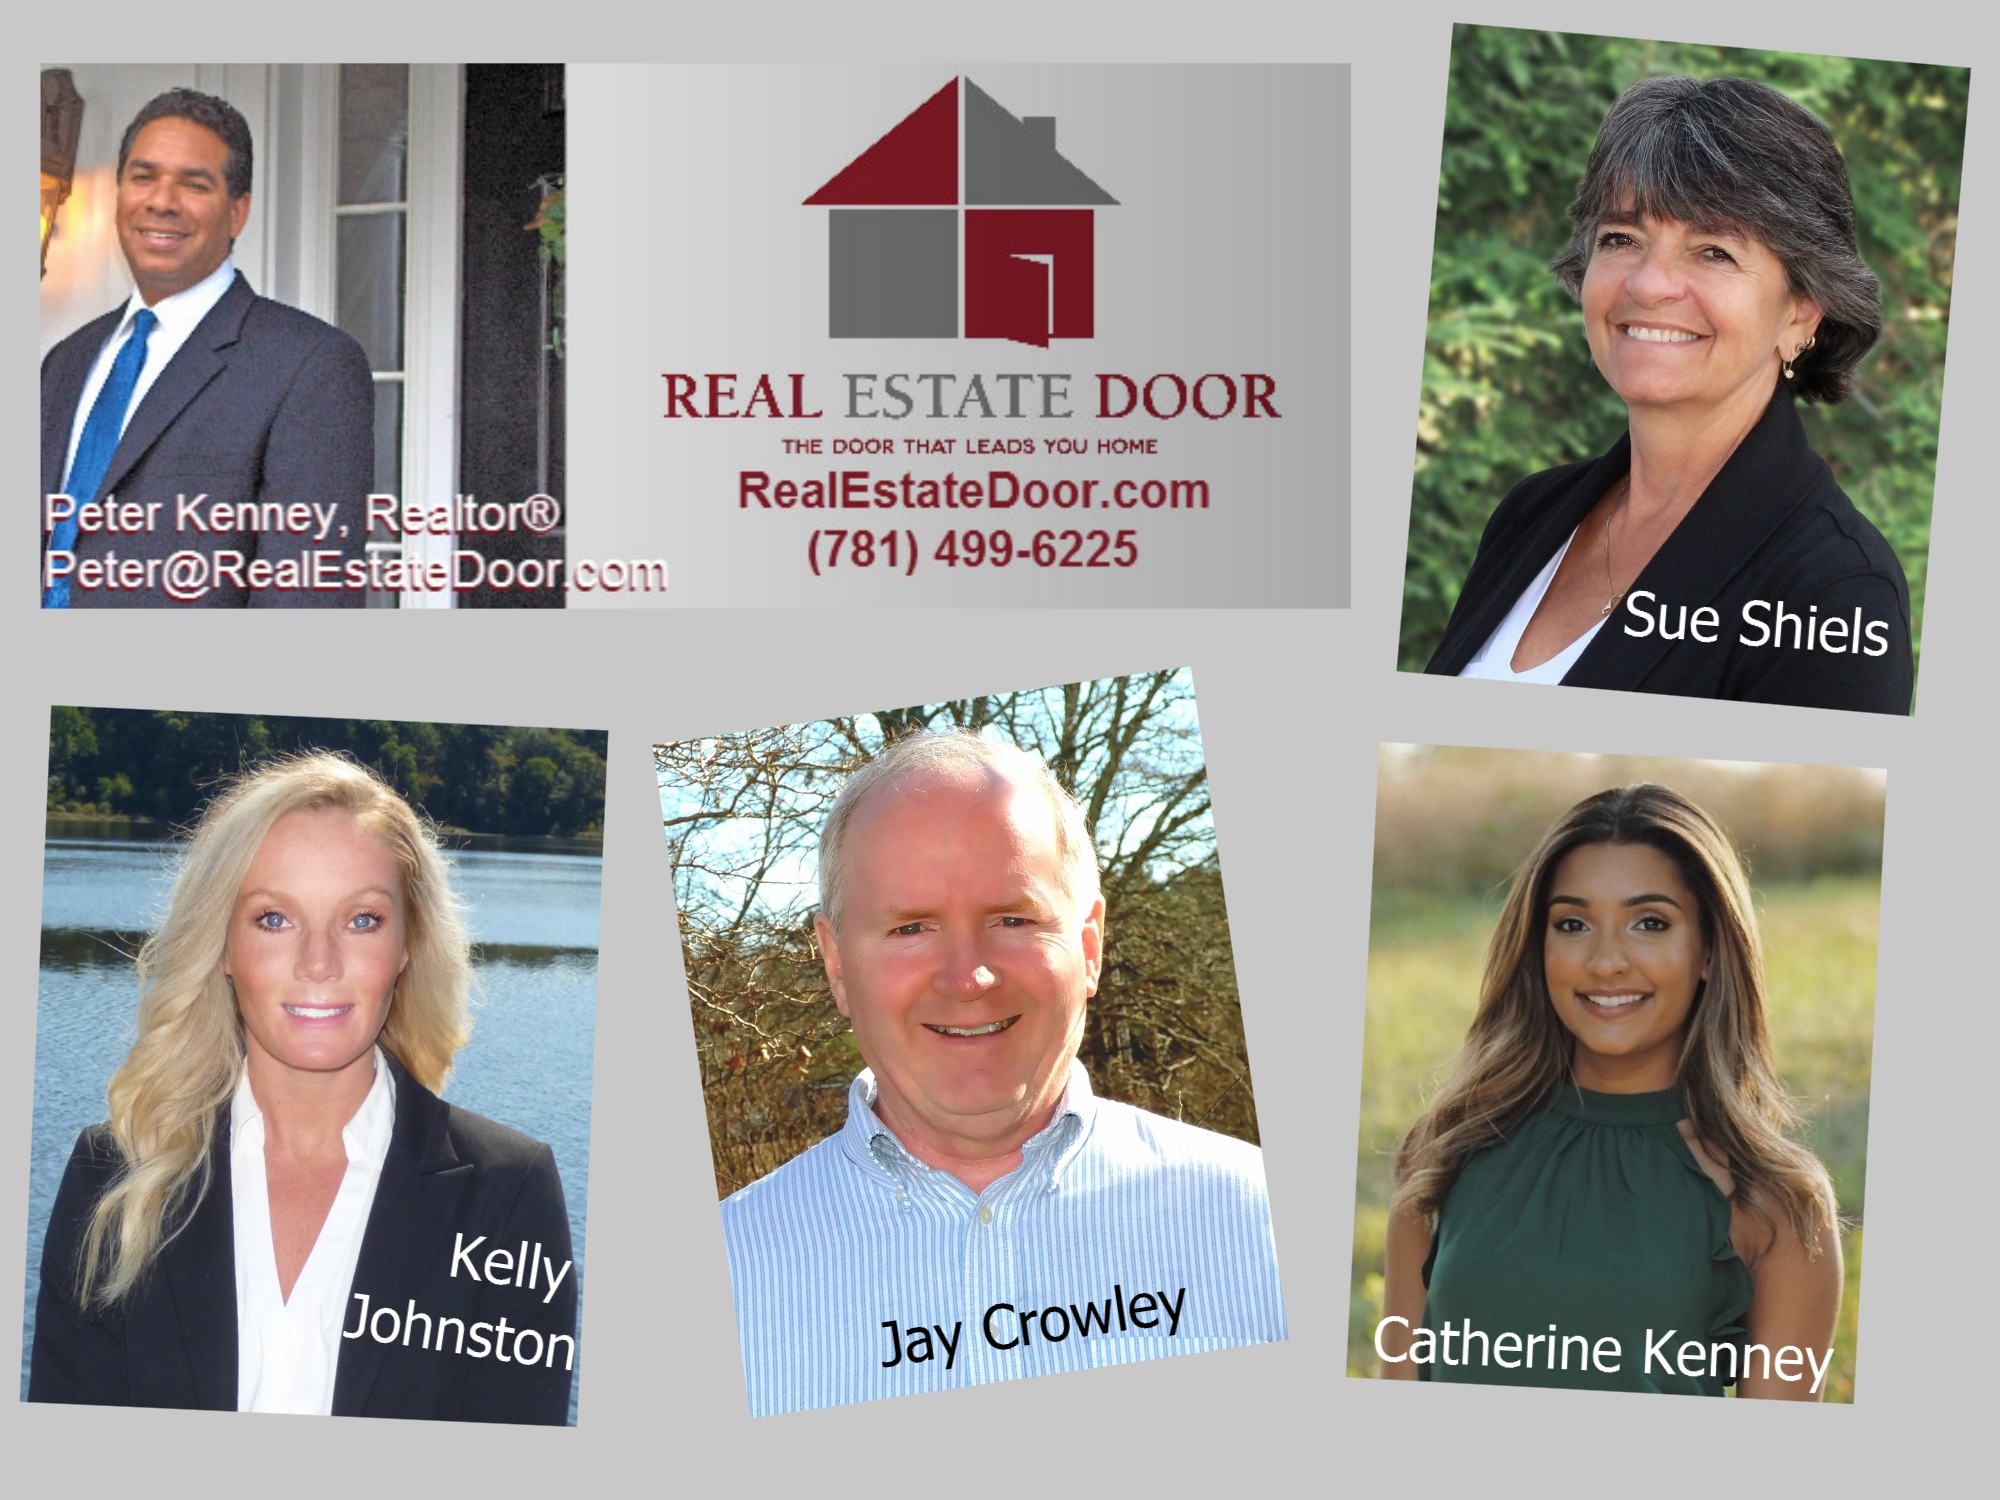 Real Estate Door - Podcast Team